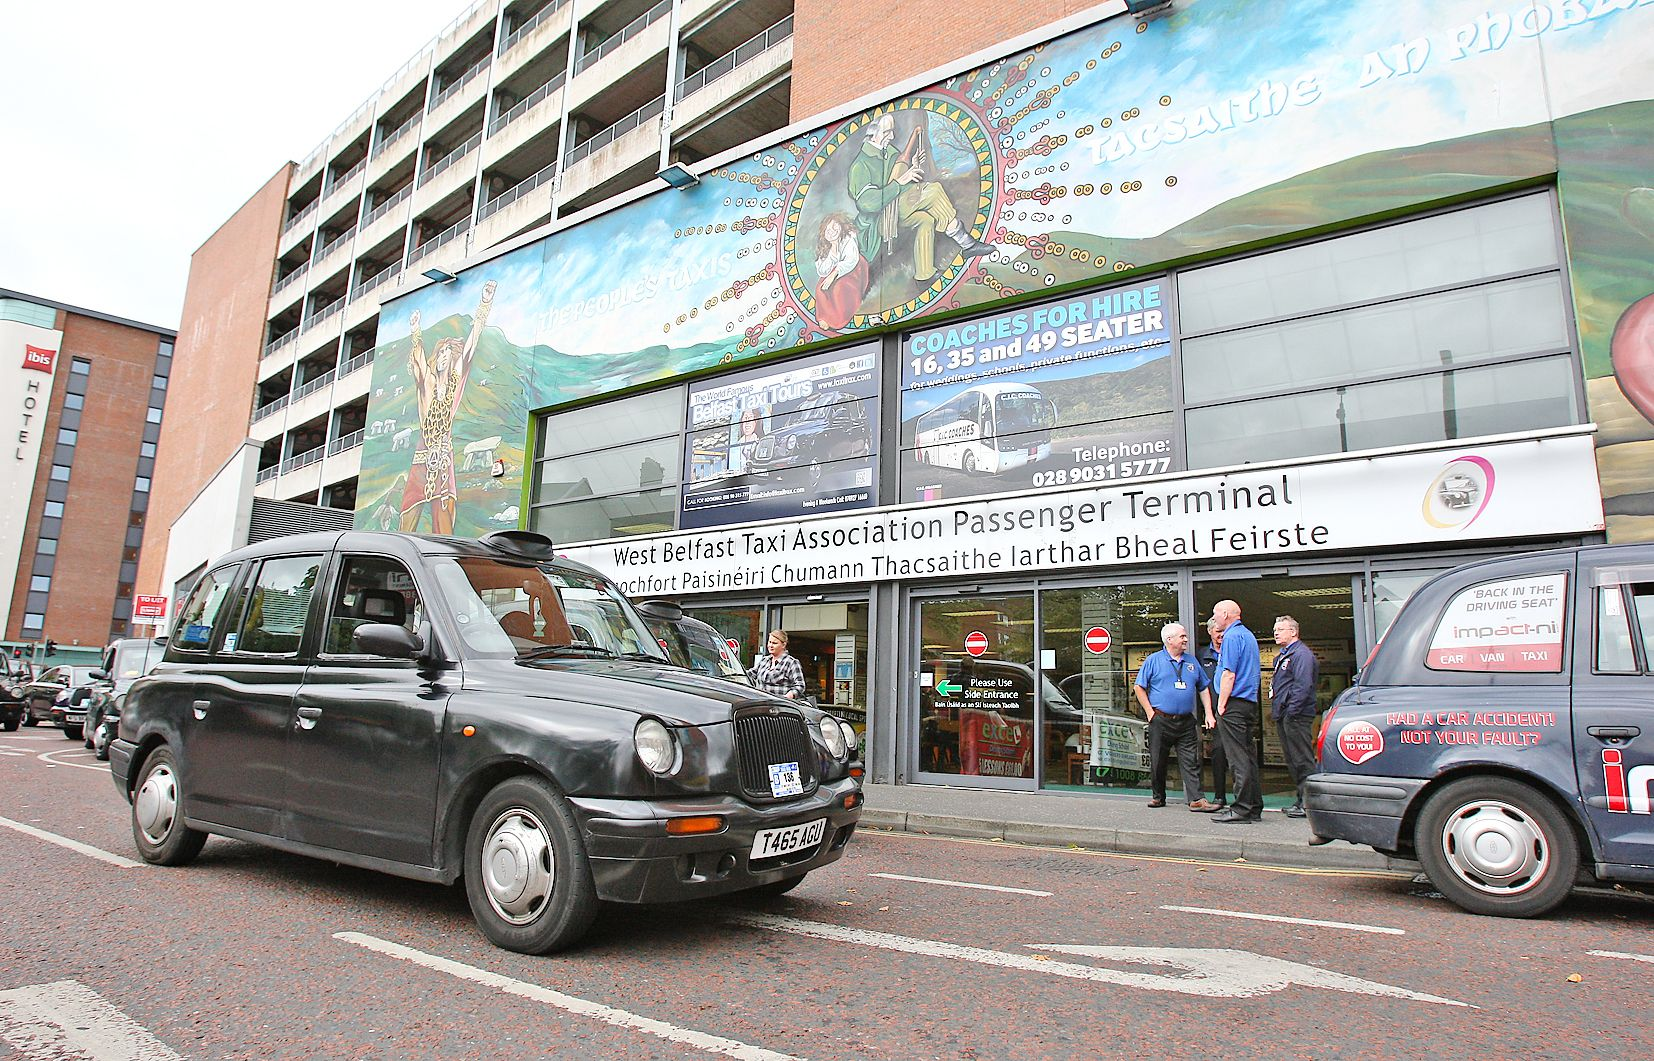 CONCESSIONARY FARES: The Department for Infrastructure has said that discussions are ongoing with Belfast Taxis CIC to extend the concessionary fares to their services